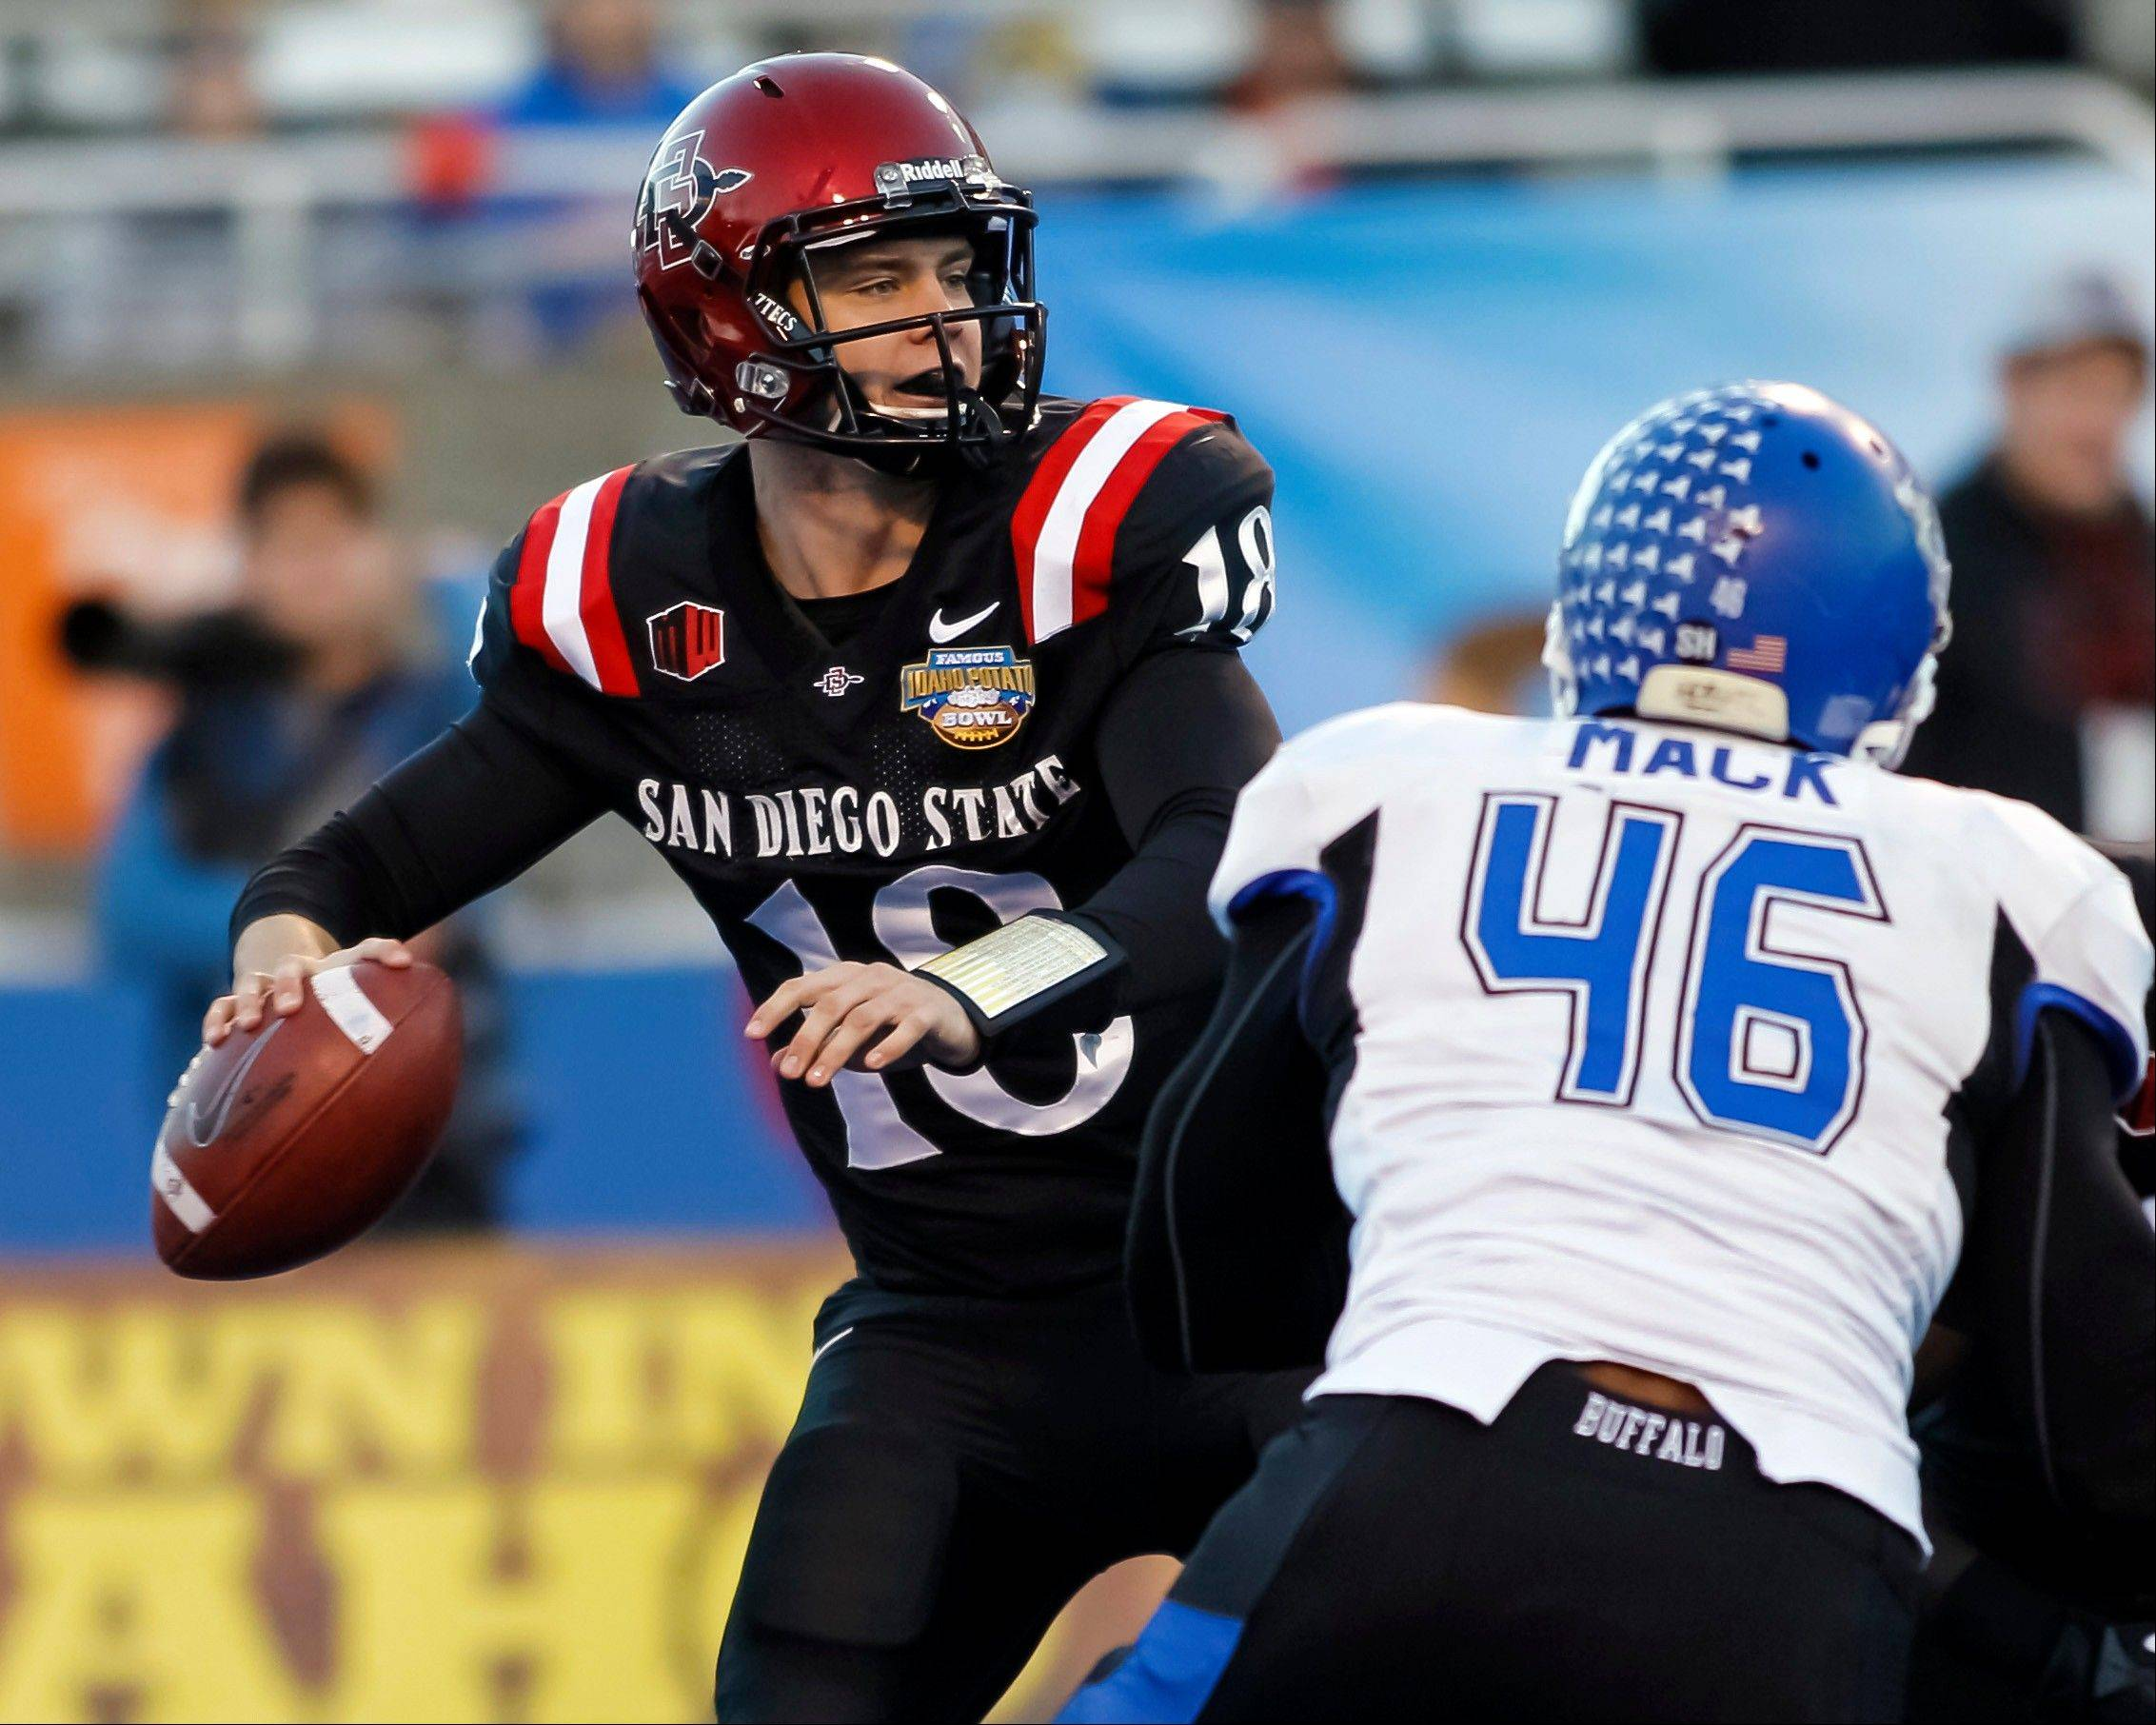 San Diego State quarterback Quinn Kaehler looks for a receiver Saturday during the first half of the Famous Idaho Potato Bowl against Buffalo in Boise, Idaho.